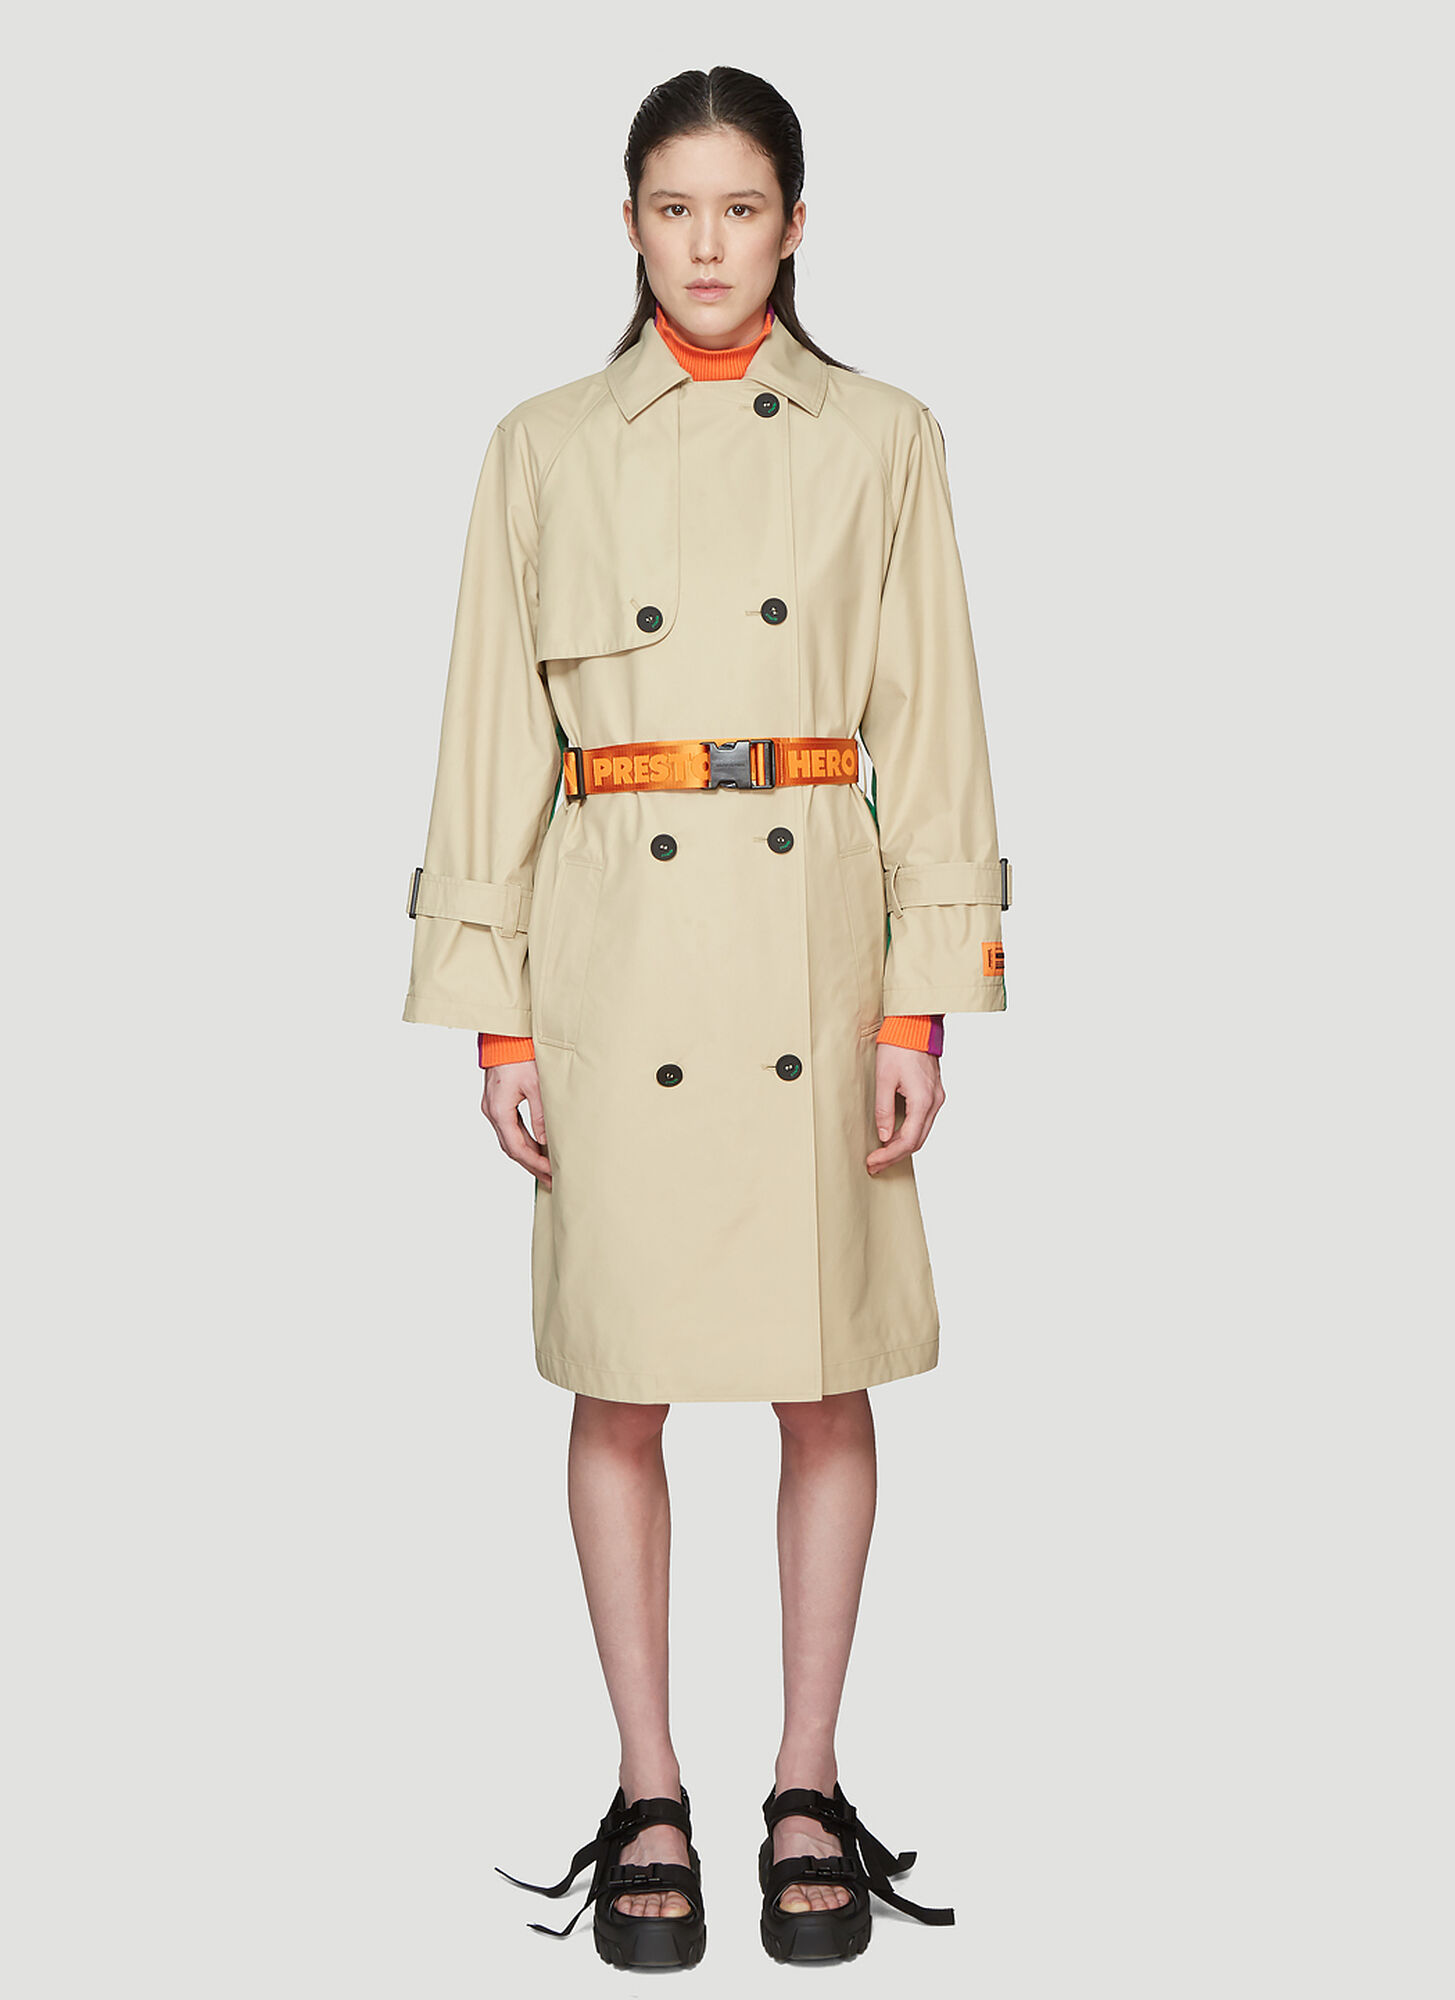 Heron Preston Patchwork Trench Coat in Beige